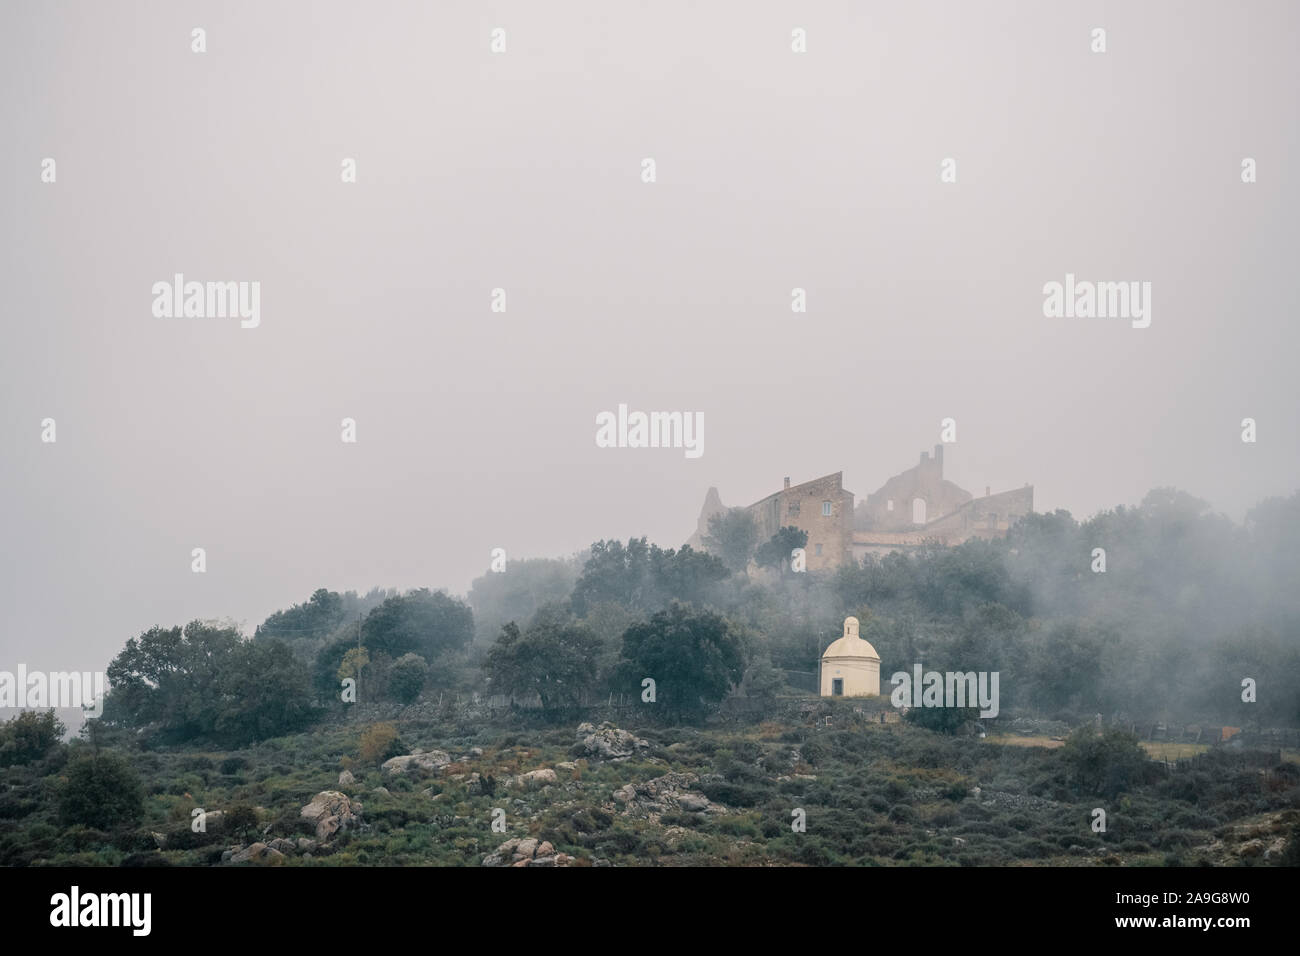 The ancient Couvent Santa Maria di a Pace and a mausoleum shrouded in mist in the ancient mountain village of Speloncato in the Balagne region of Cors Stock Photo